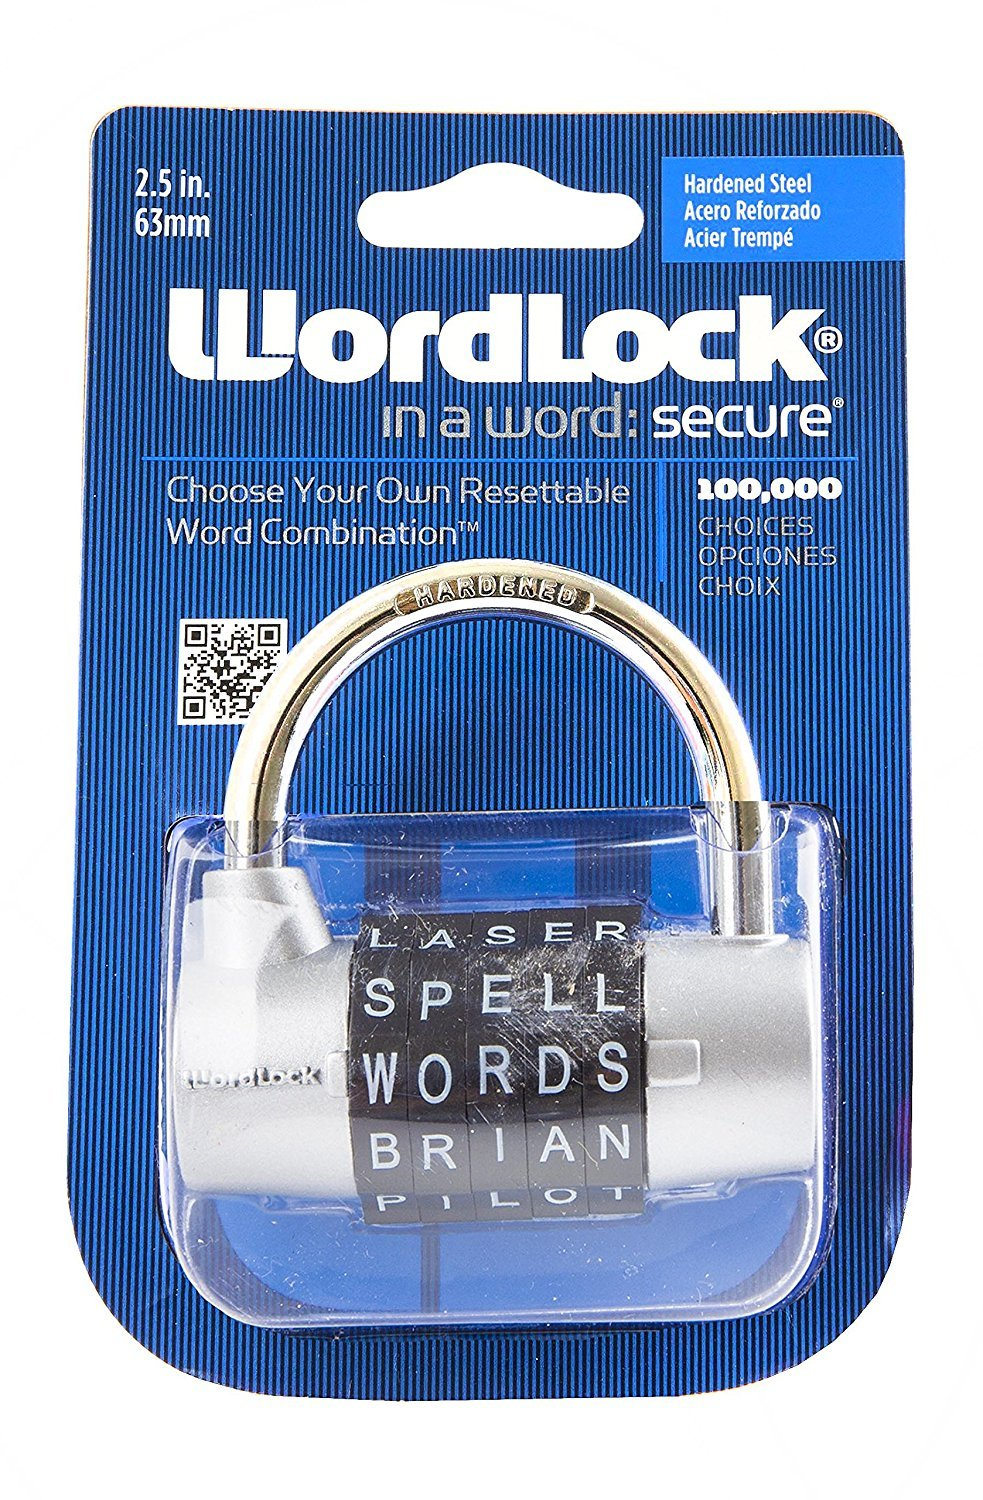 Wordlock PL-003-SL 5-Dial Combination Padlock, Silver 2pack